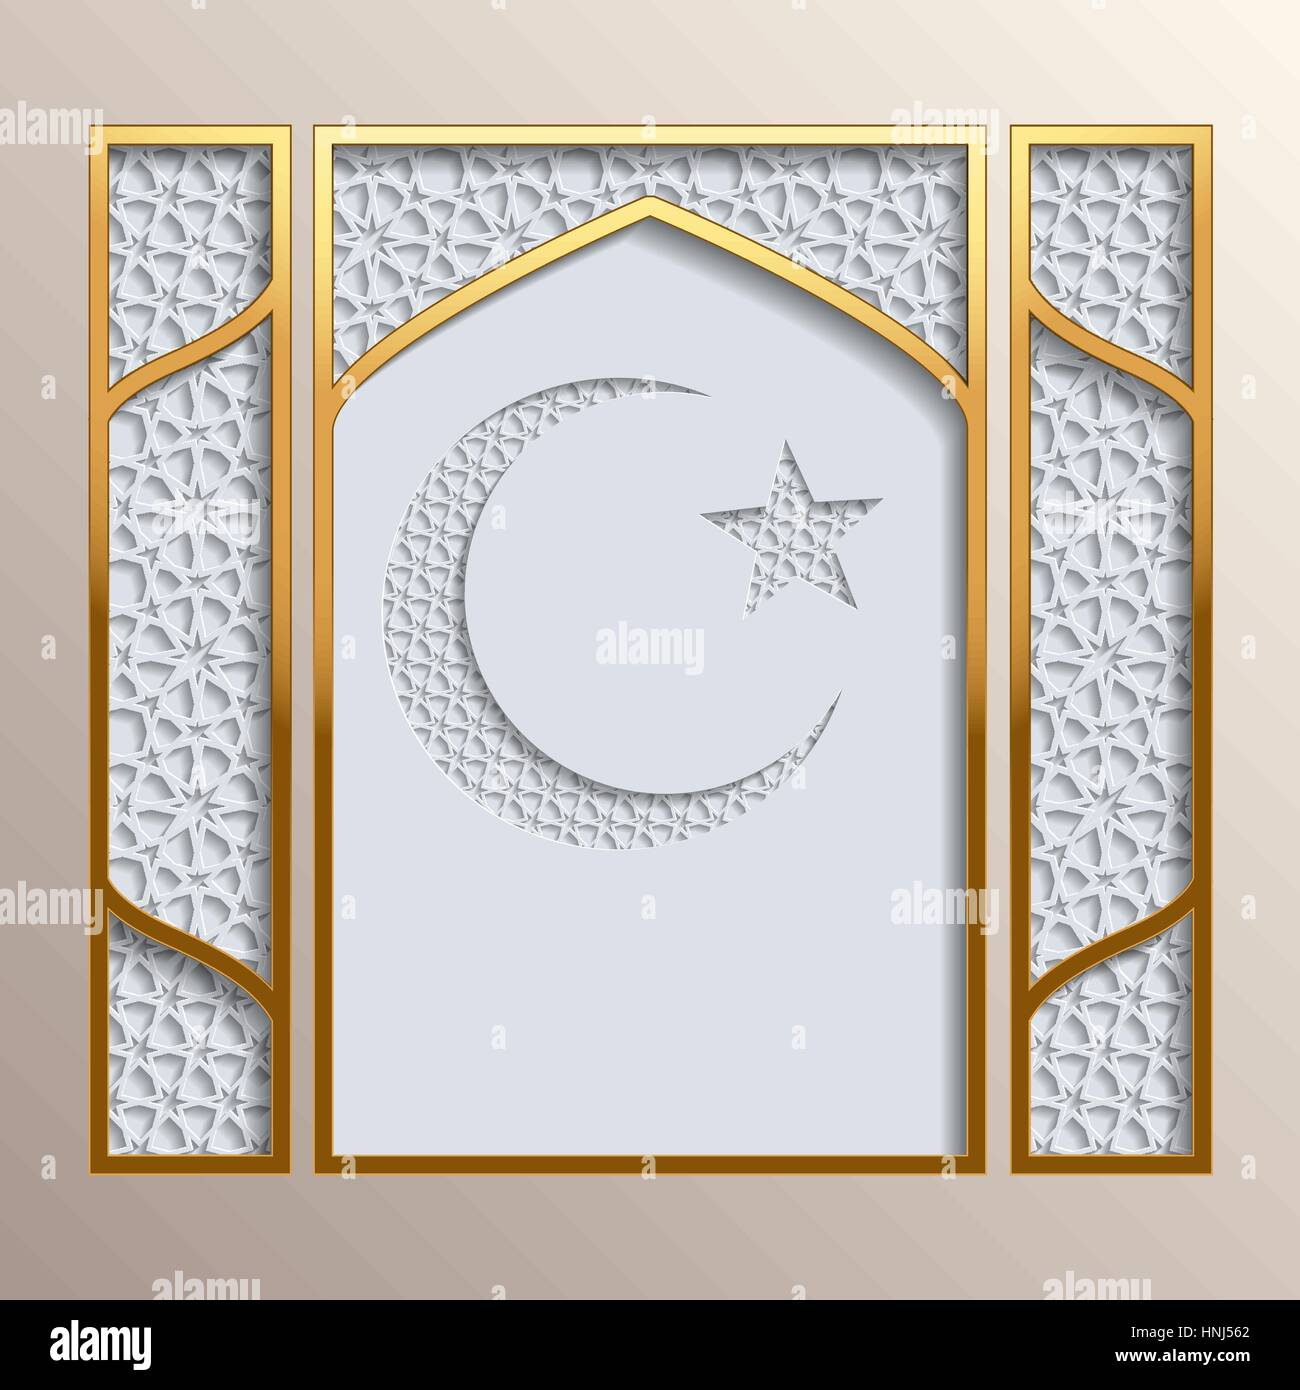 Islamic greeting card. Golden frame with 3D background